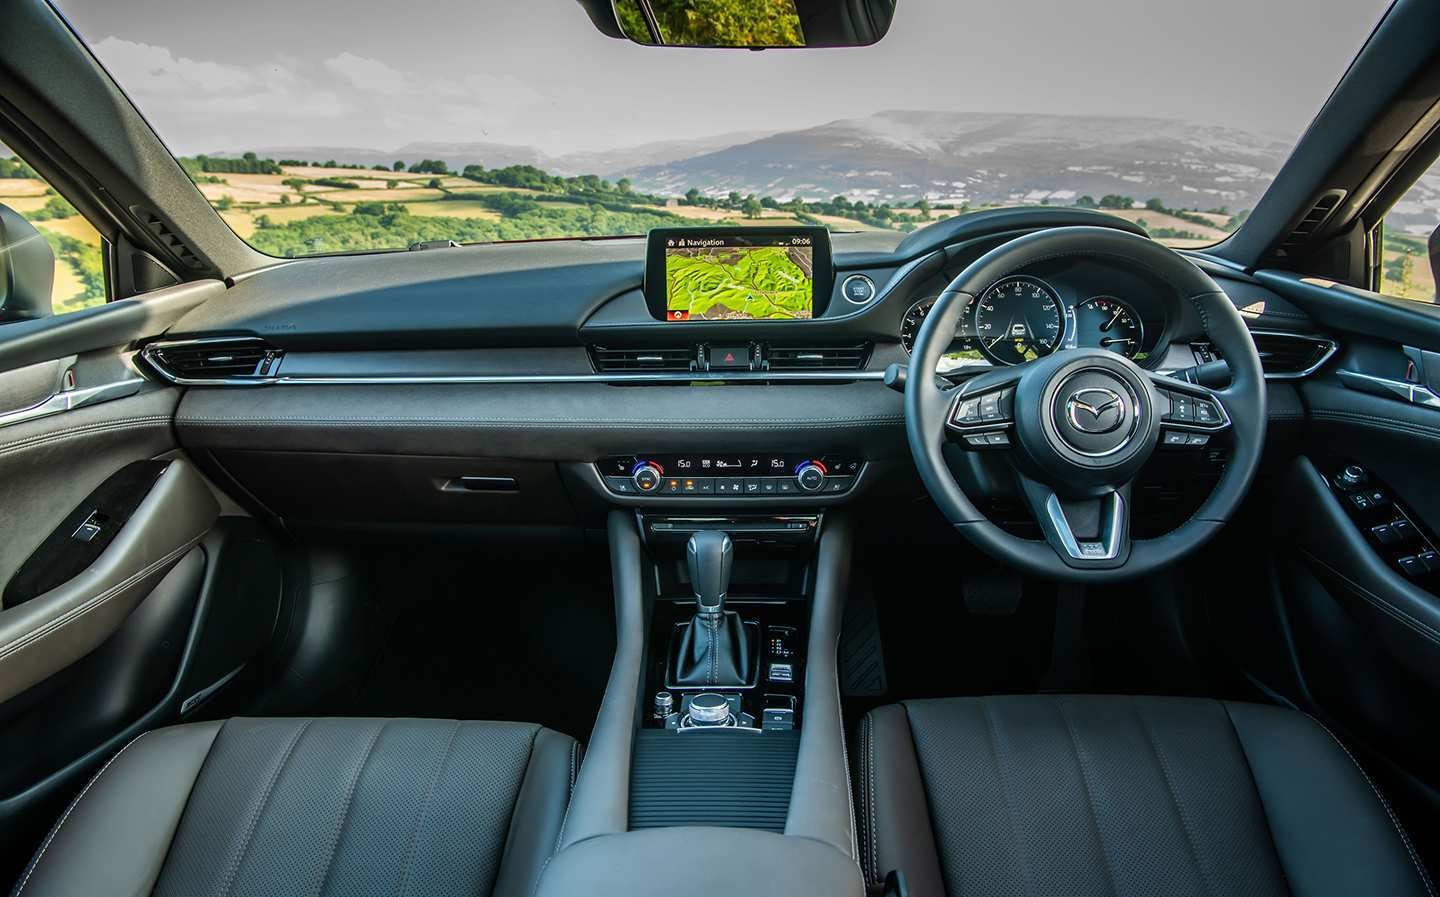 95 A Mazda 6 2019 Interior Redesign And Concept